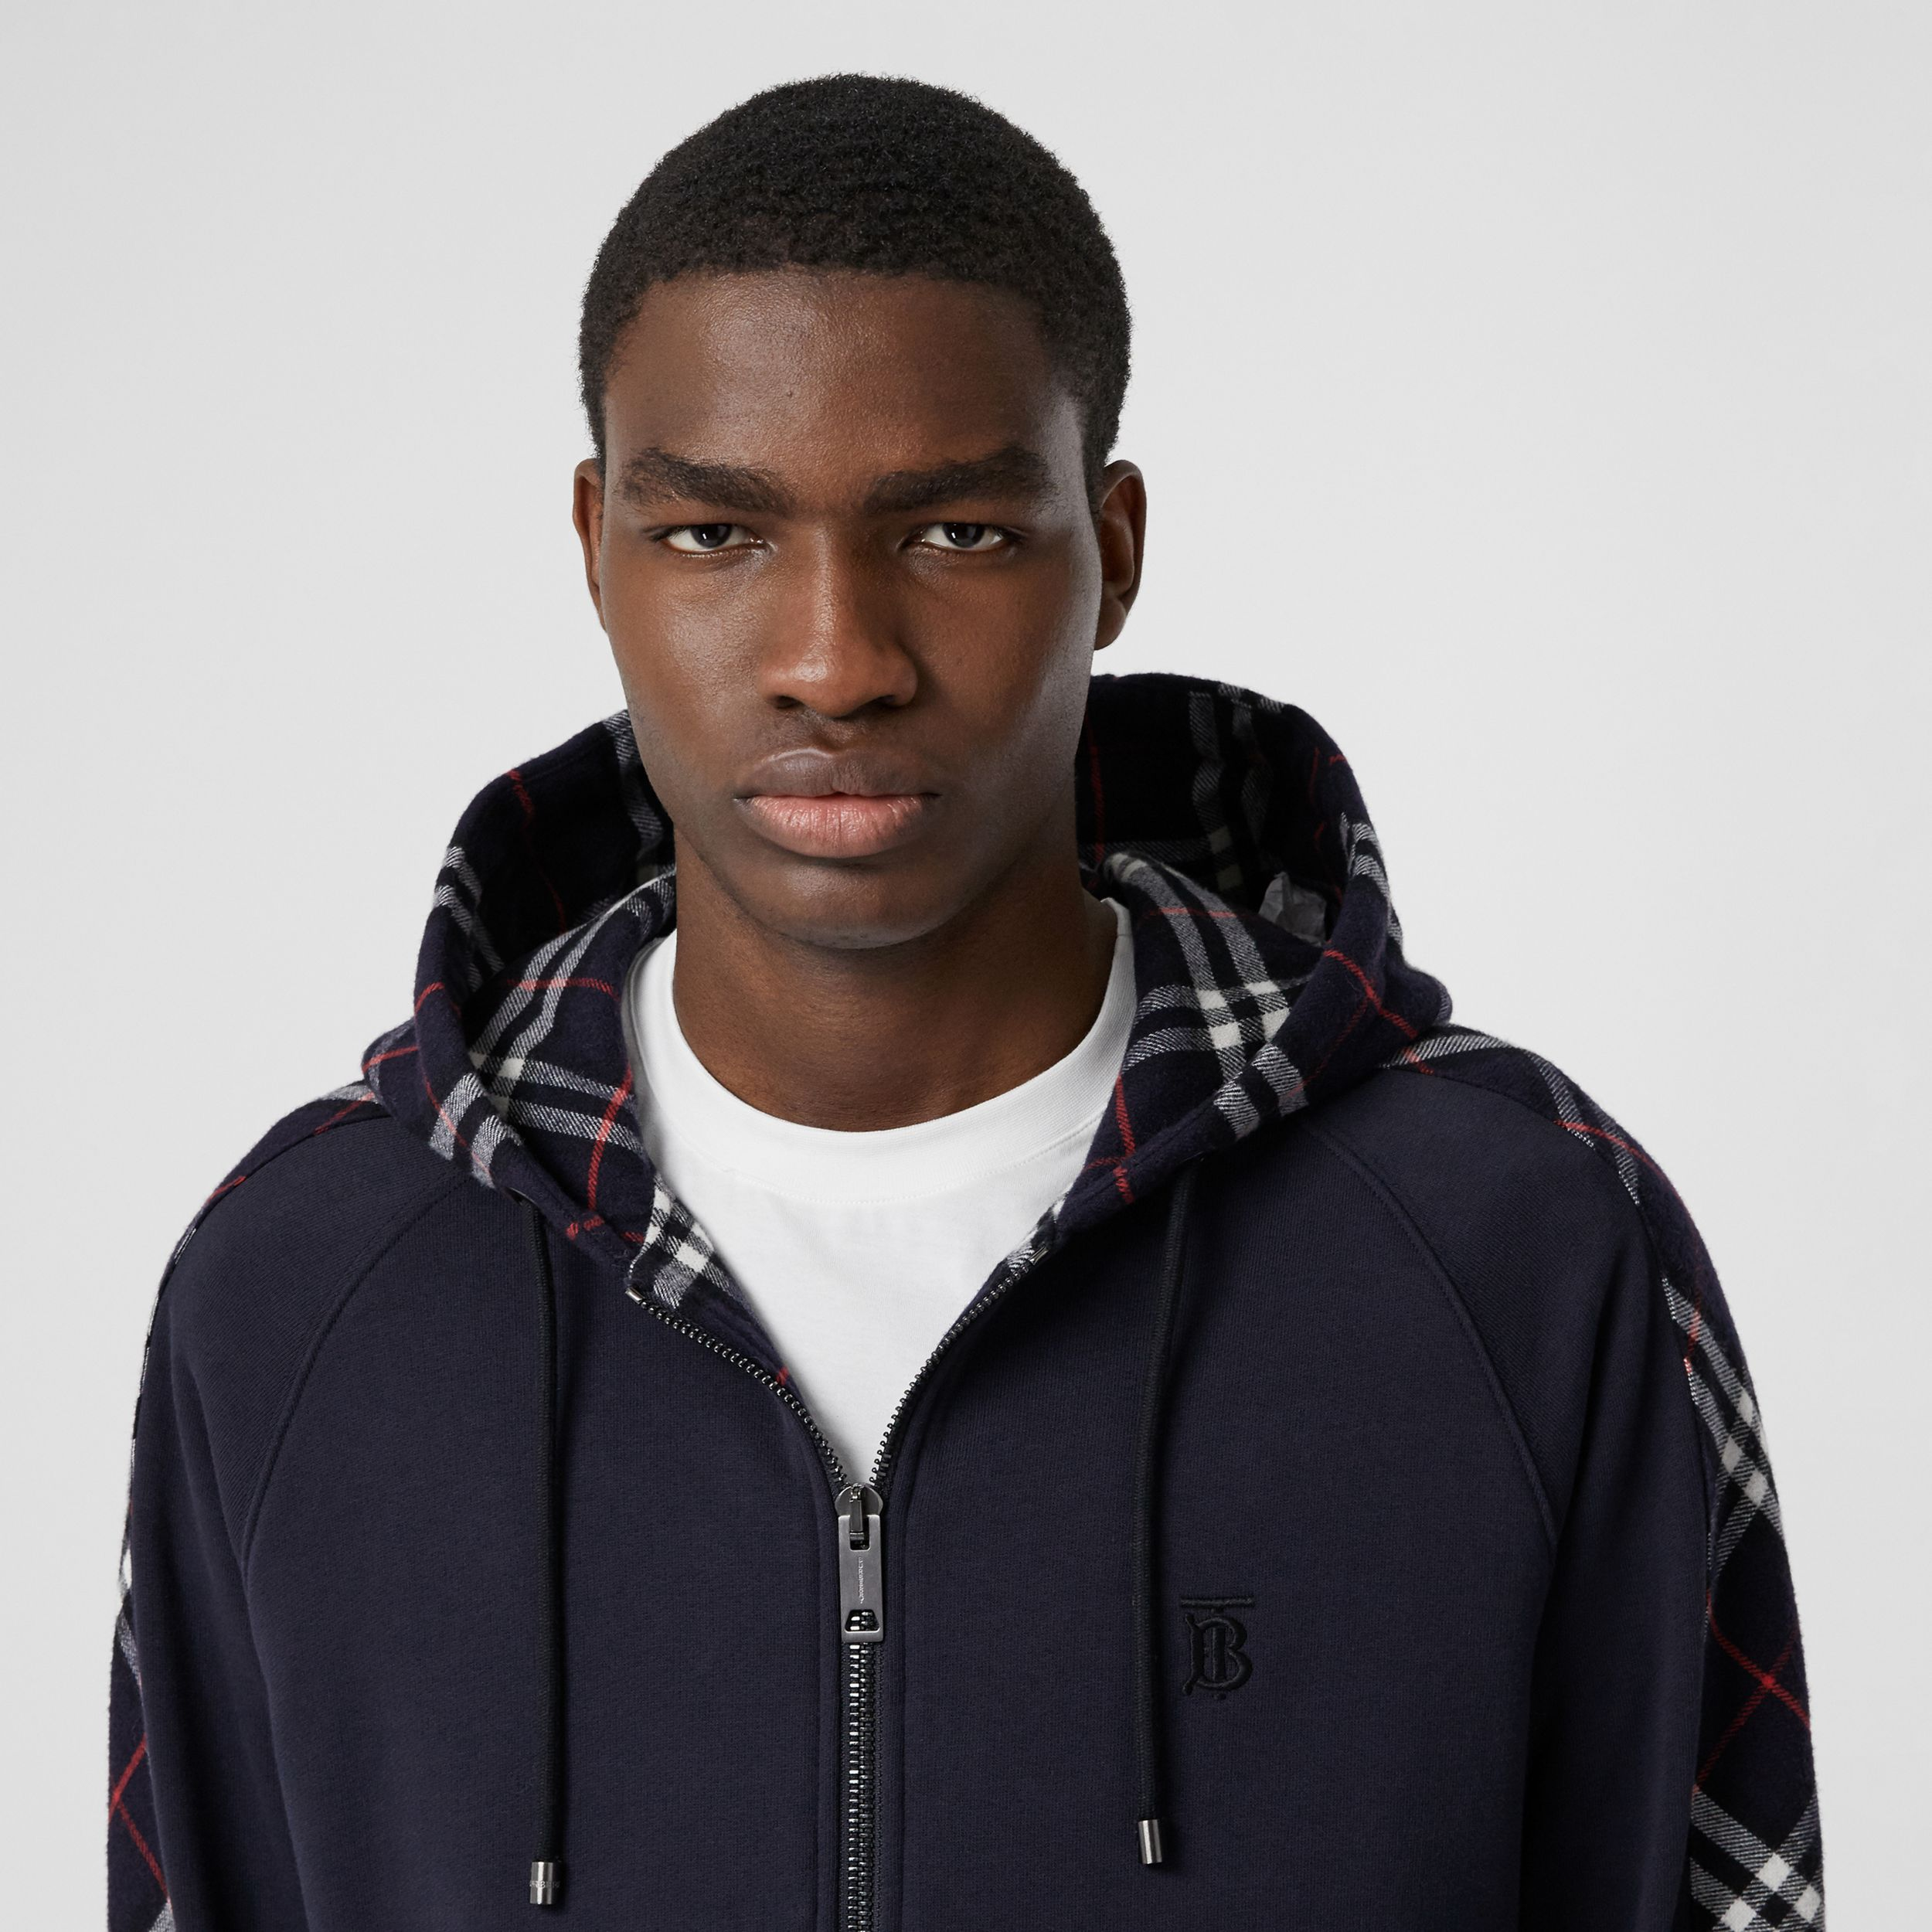 Vintage Check Panel Cotton Hooded Top in Navy - Men | Burberry - 2